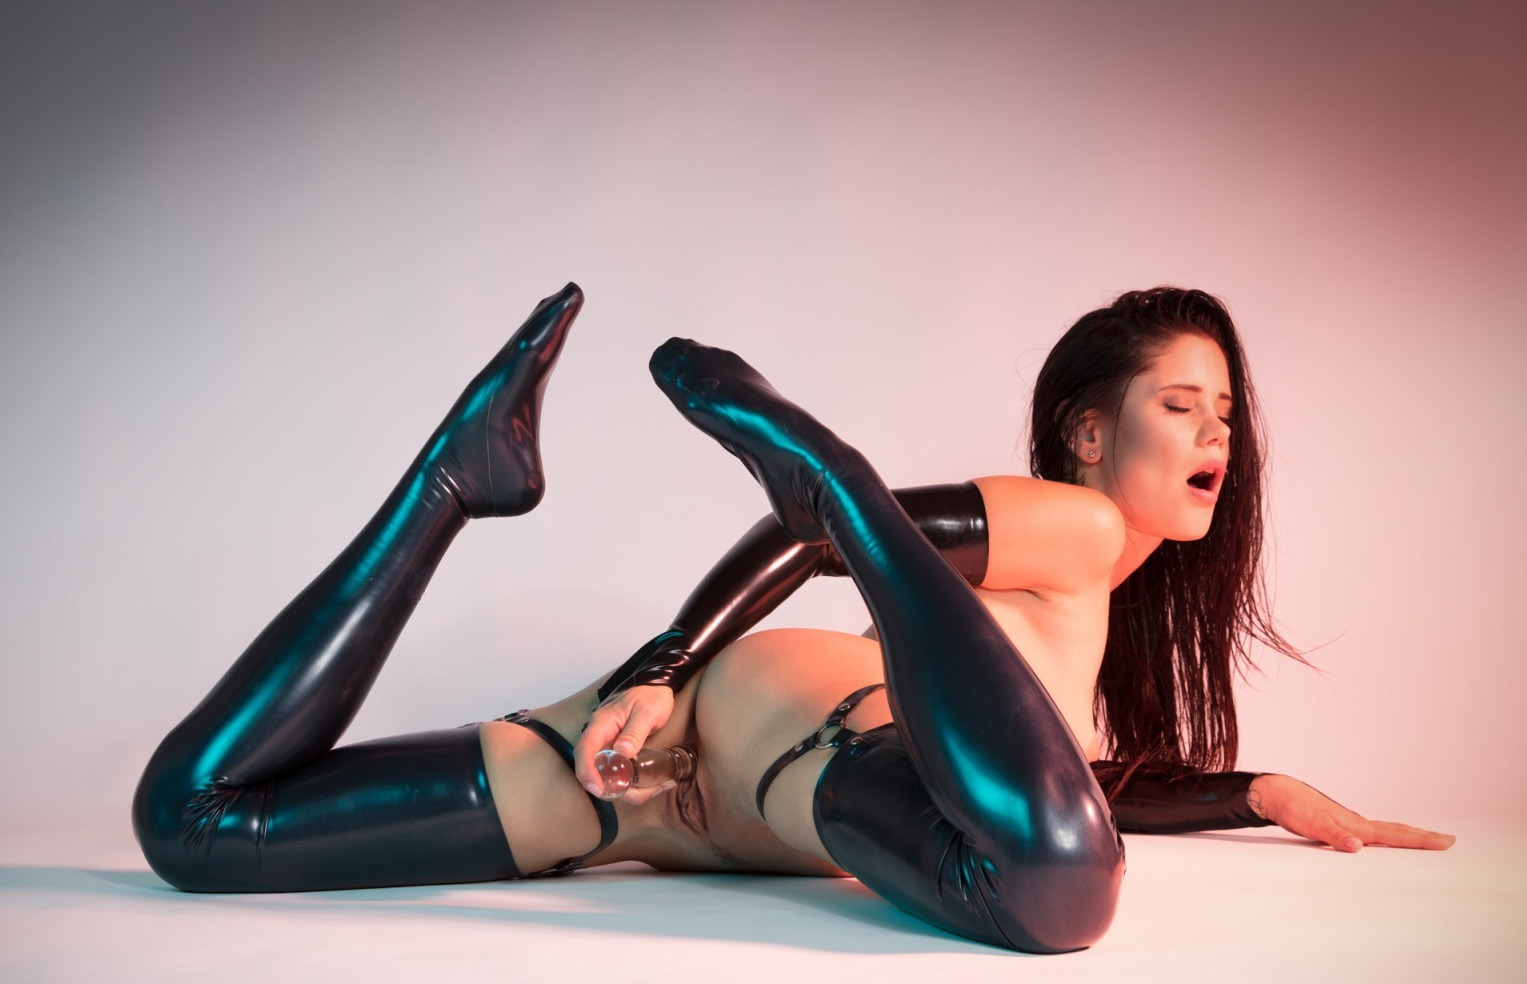 Caprice Divas - The colour of Latex